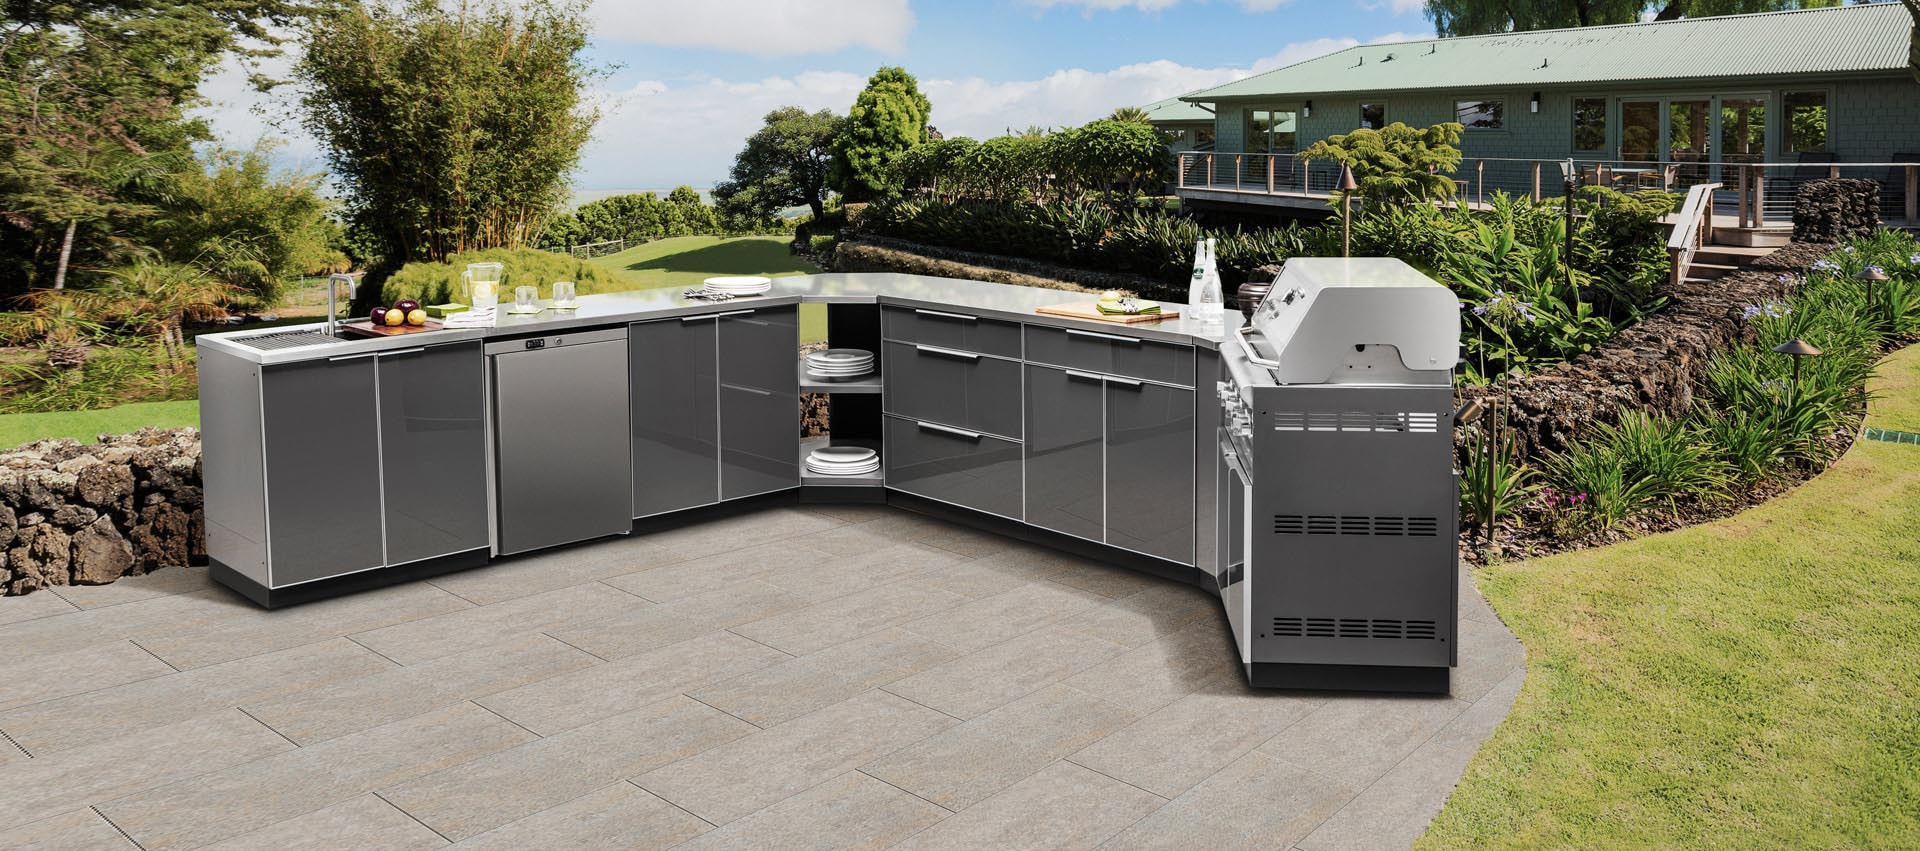 2019 Vermont Modular Outdoor Kitchens Stainless Steel Bbq Grill Furniture Buy Kitchens Stainless Steel Outdoor Furniture Modern Kitchen Cabinet Product On Alibaba Com